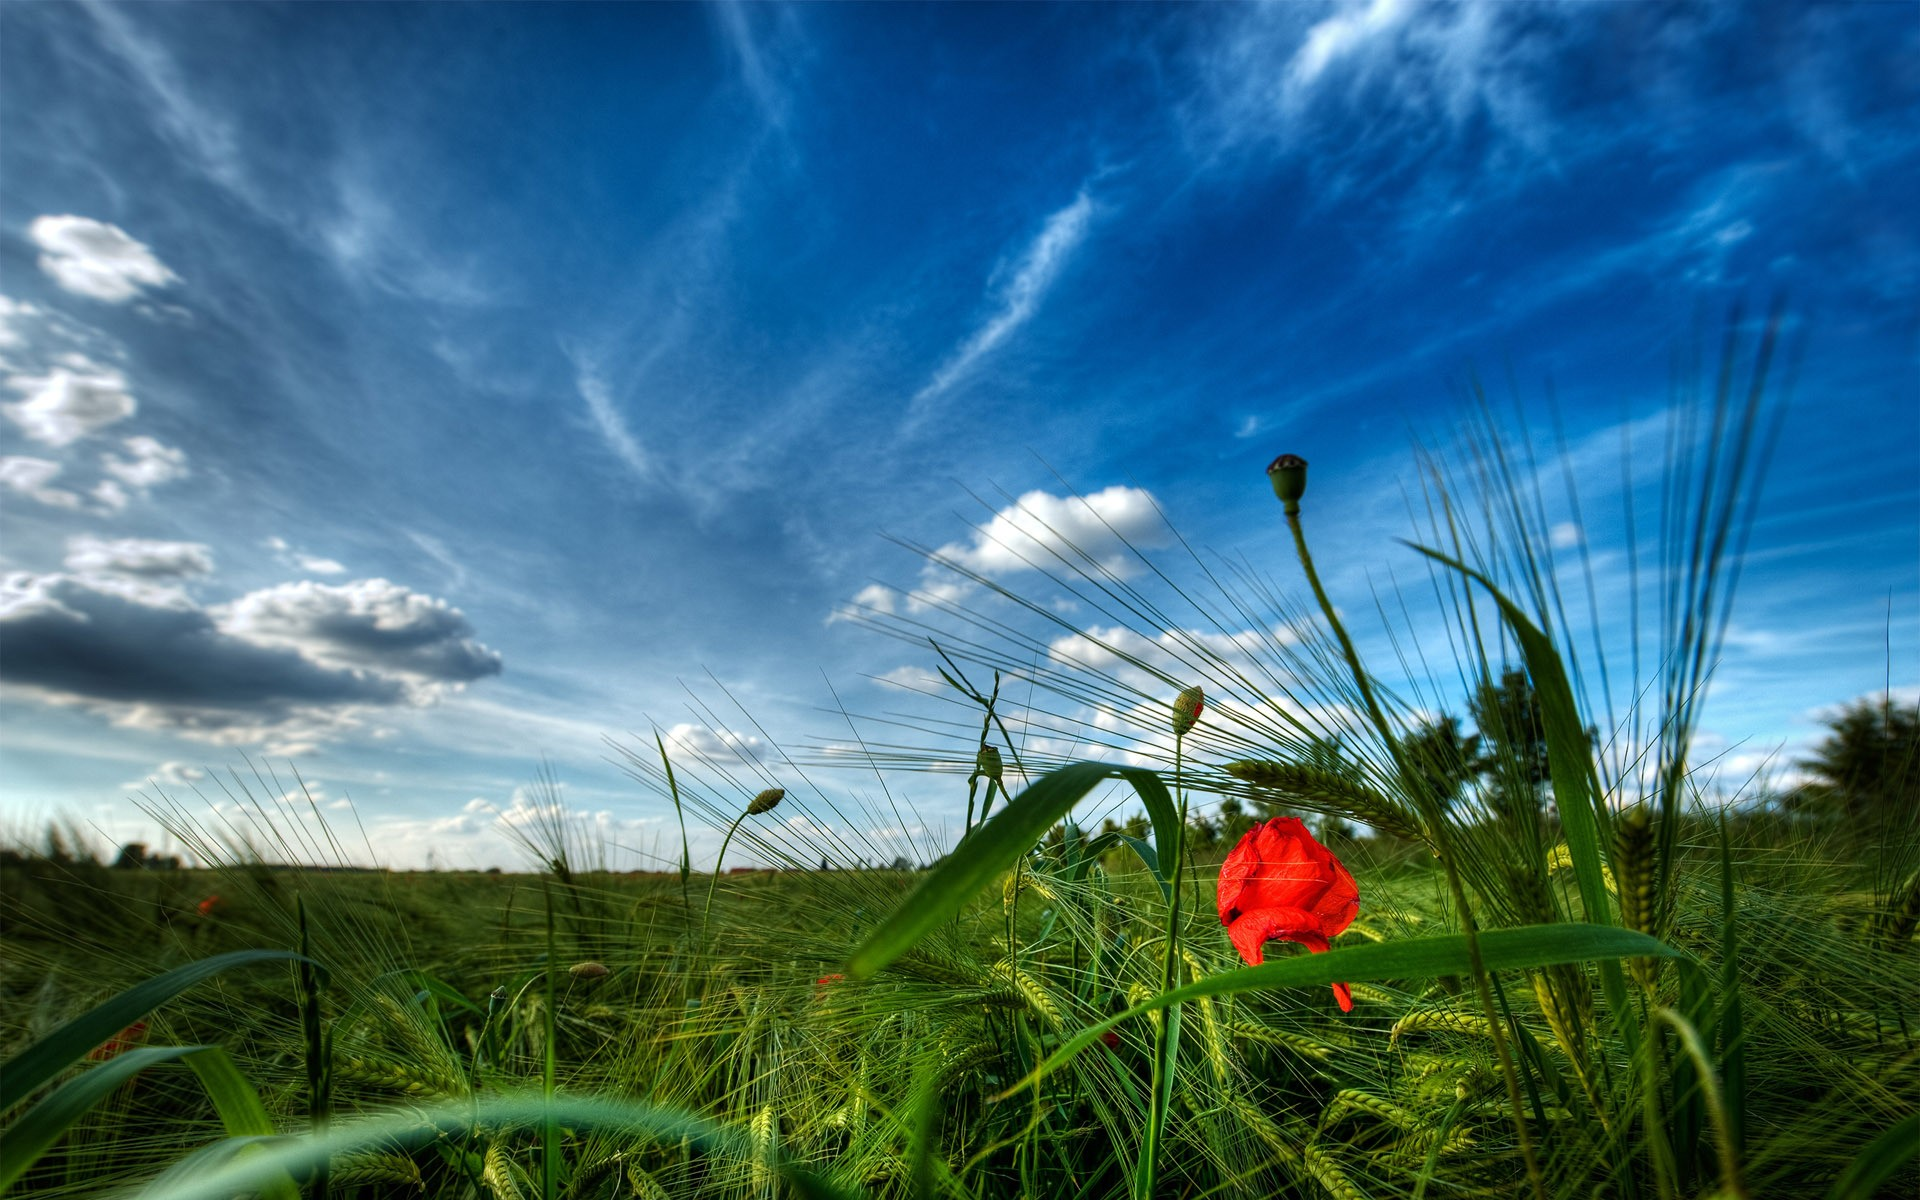 poppy-fields-hd-wallpaper